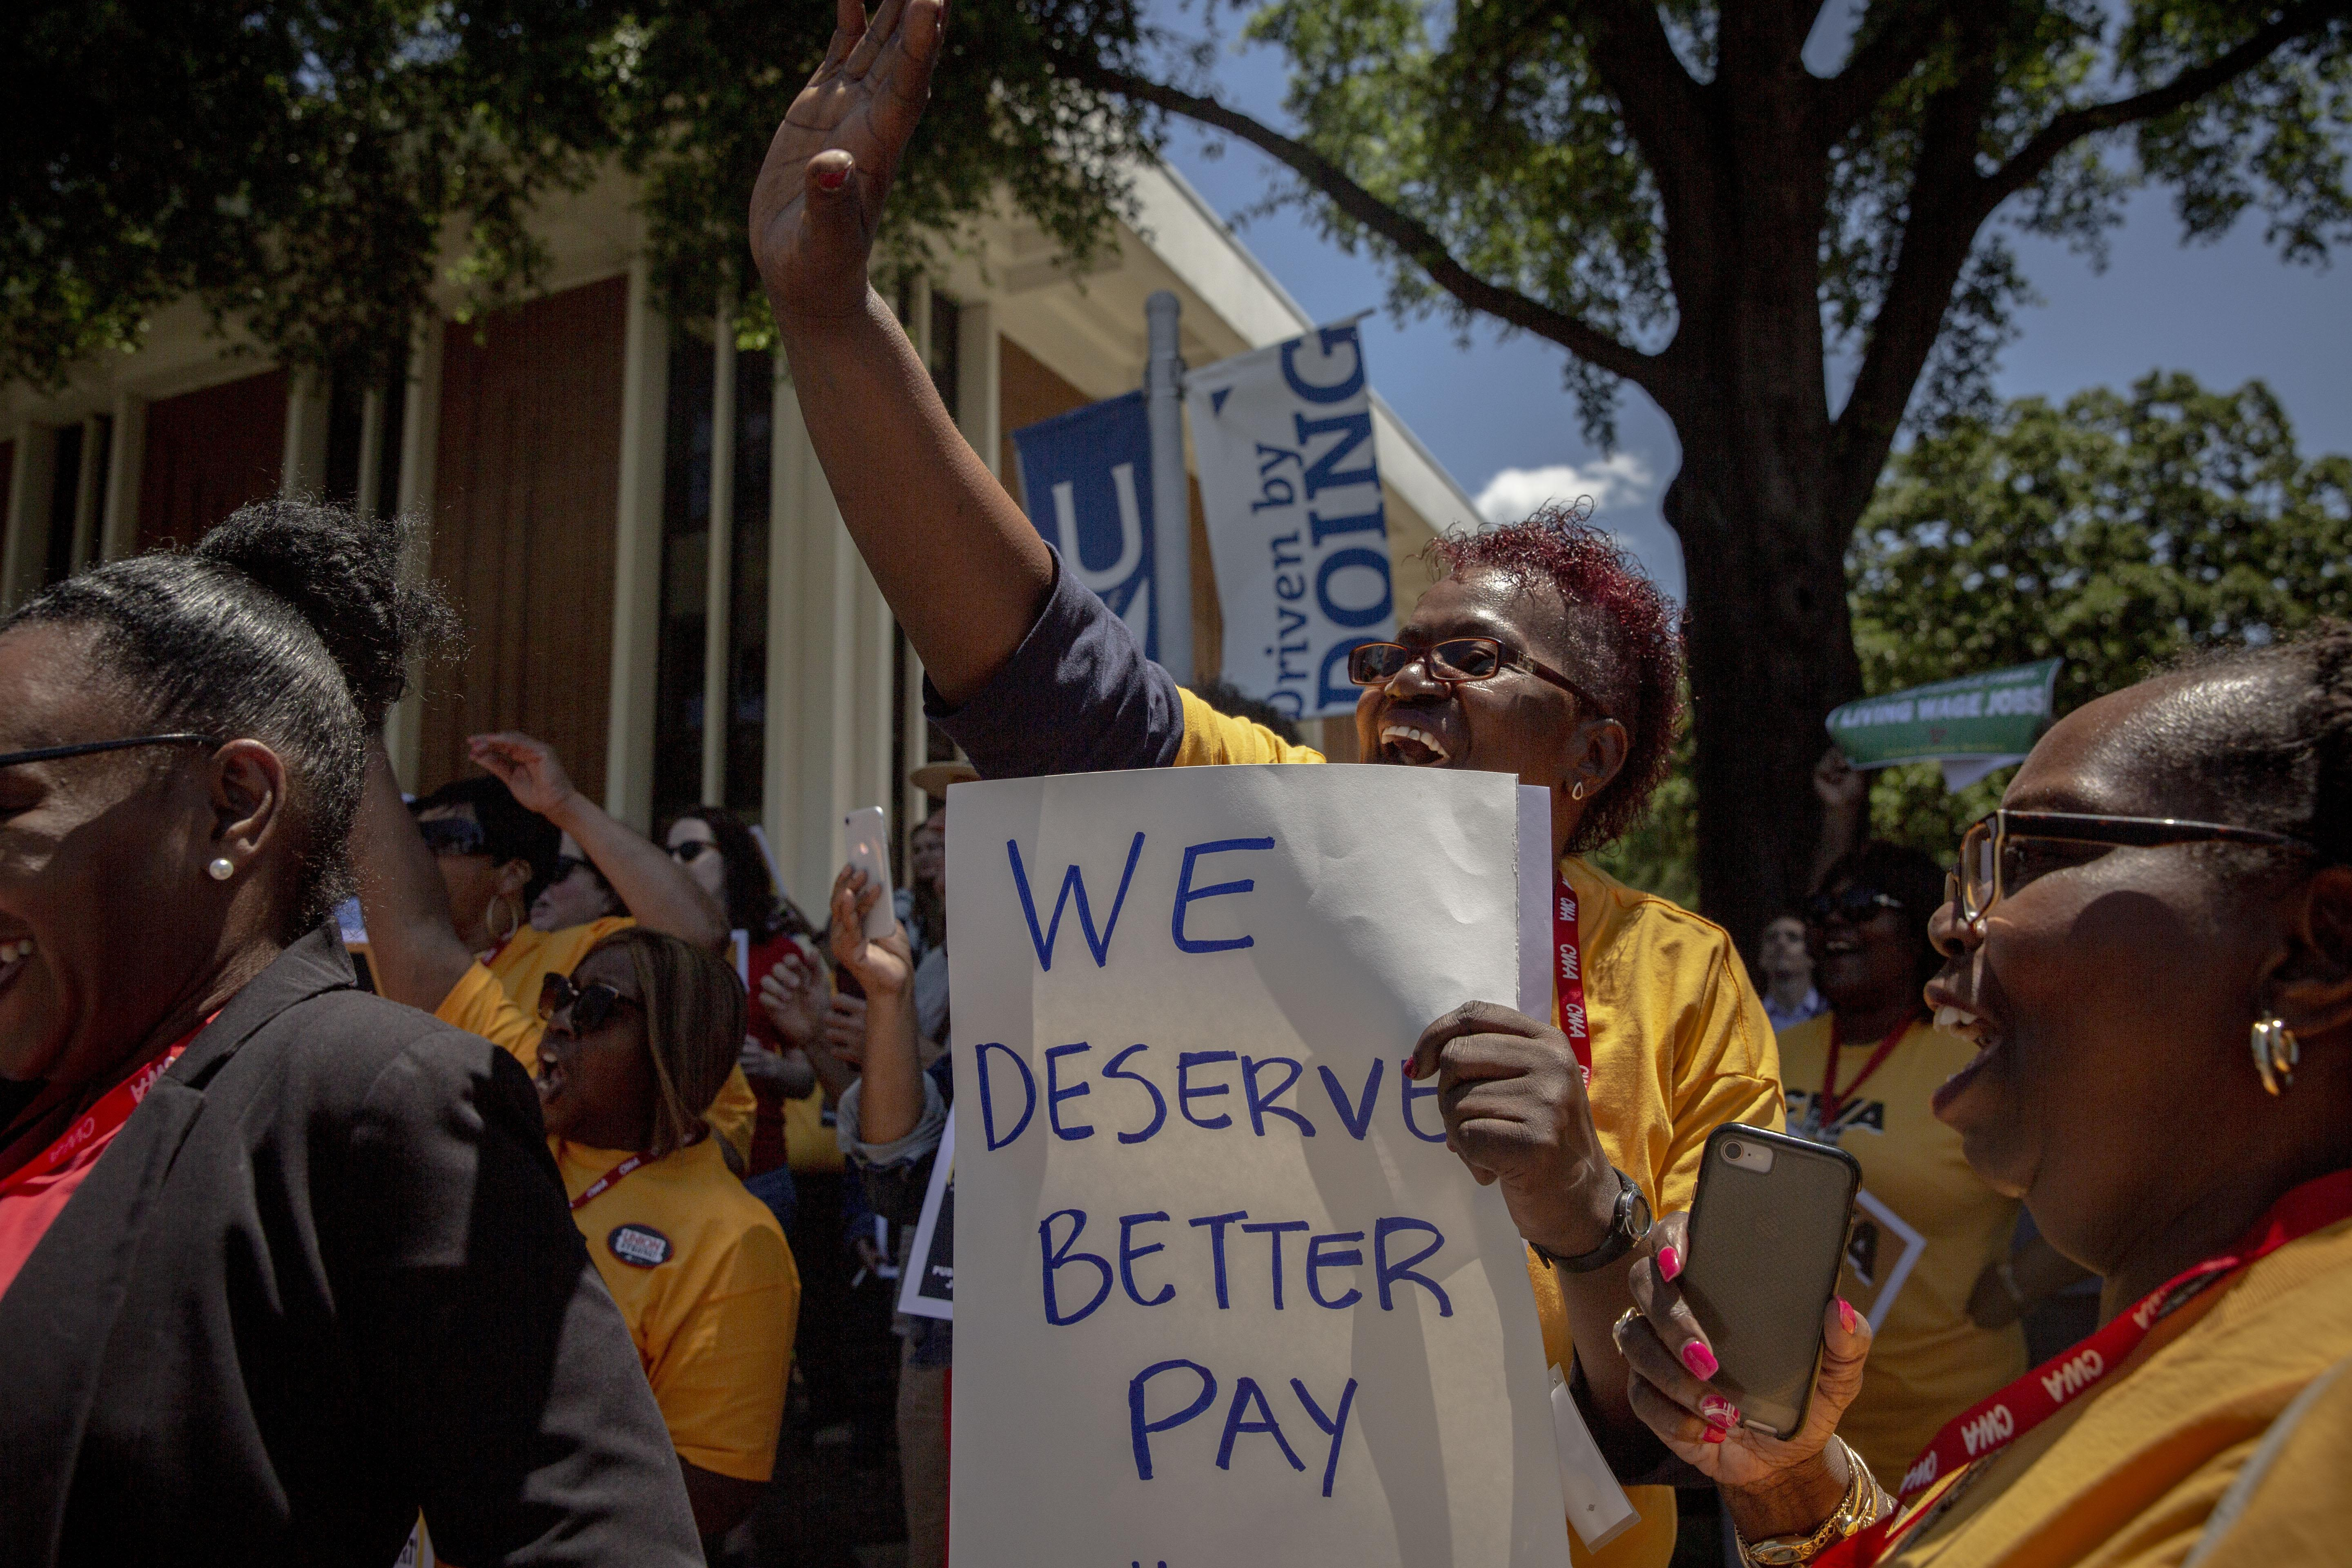 Rally for $15/hr at the University of Memphis in June 2019. Photo by Andrea Morales.